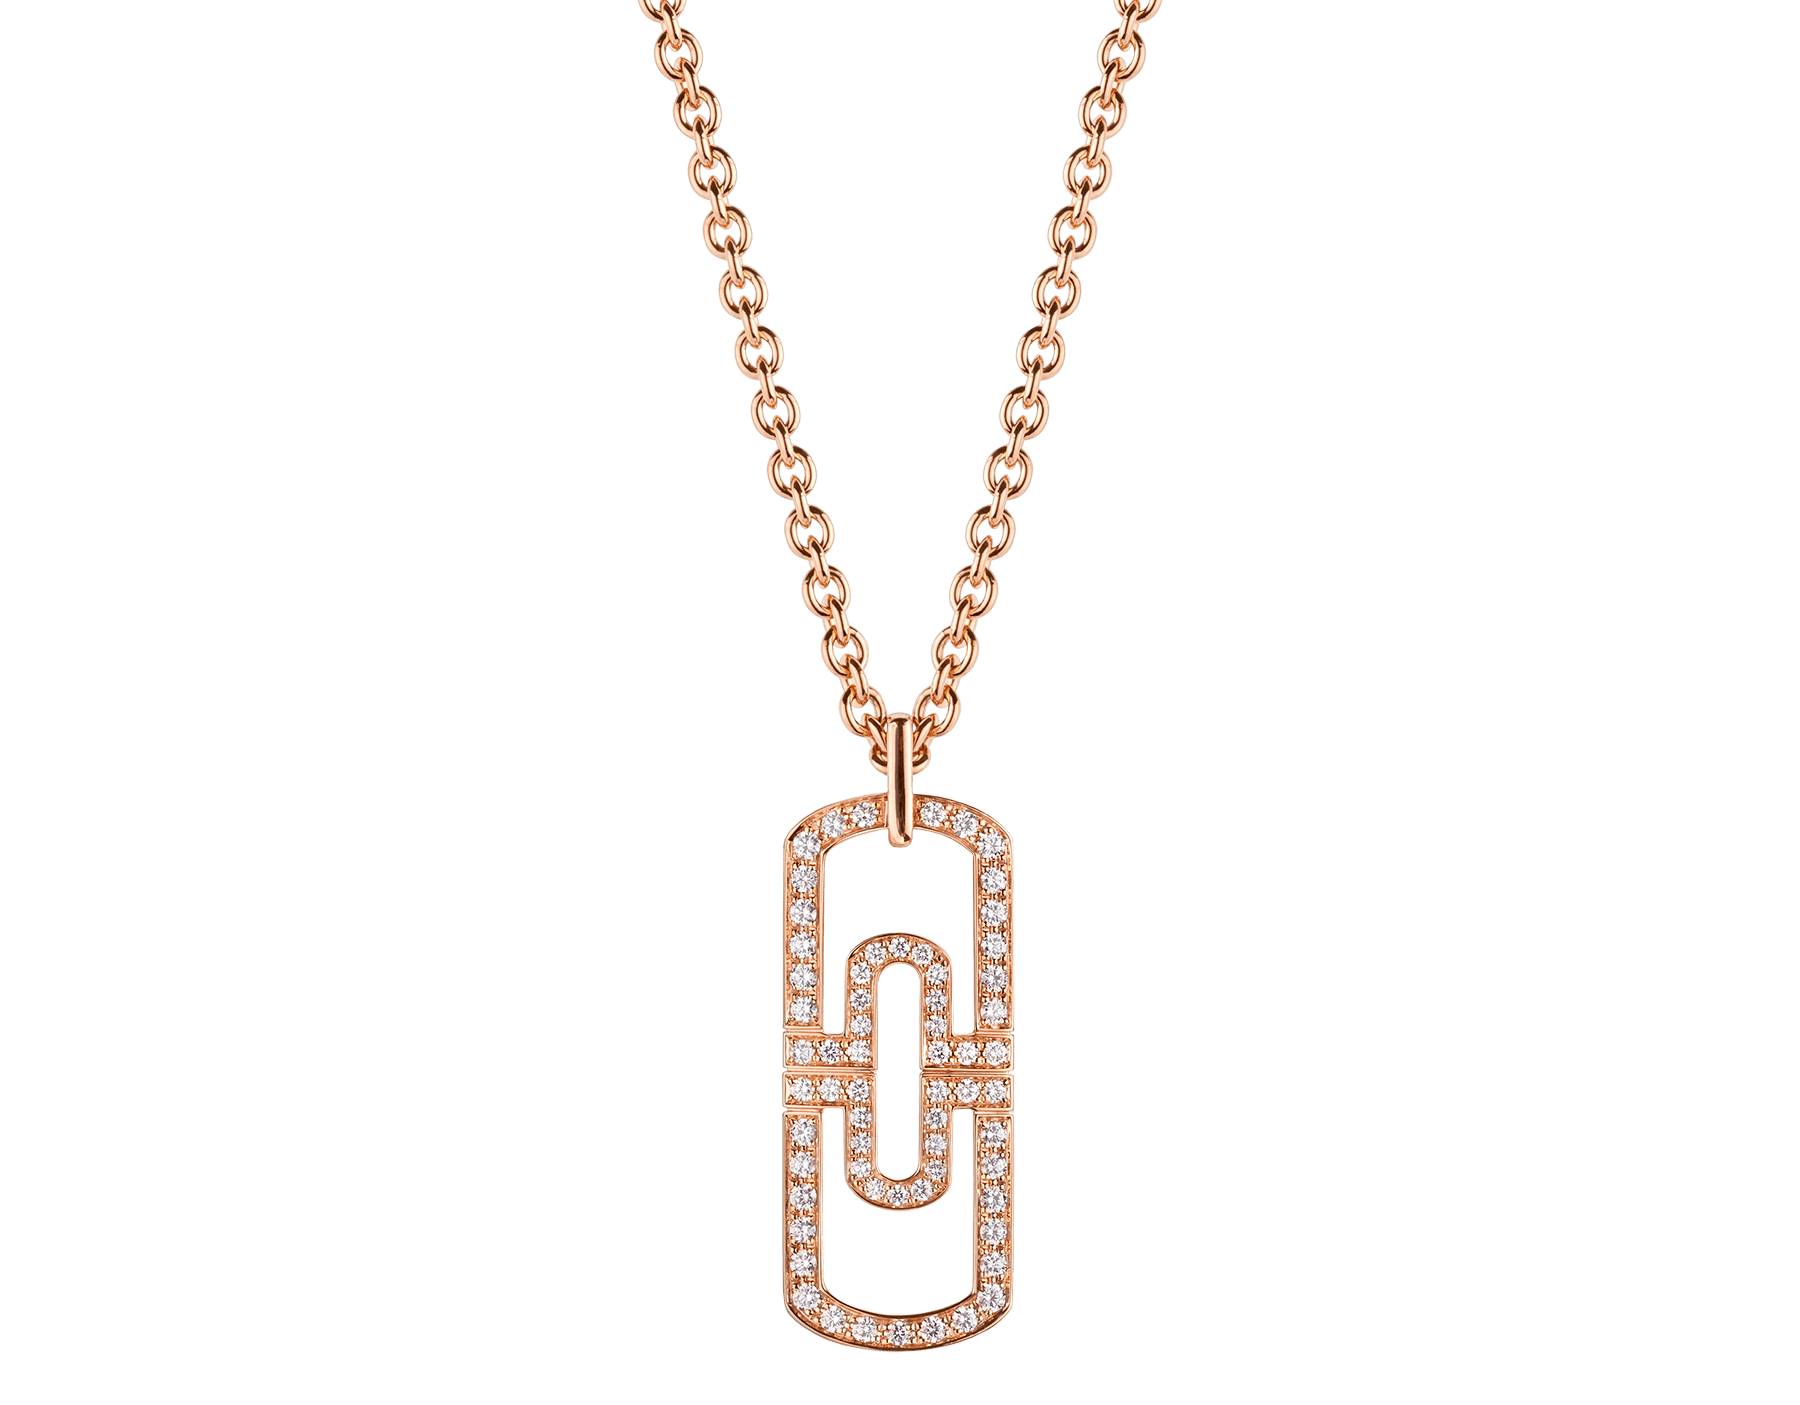 Parentesi necklace with 18 kt rose gold chain and 18 kt rose gold pendant set with full pavé diamonds 349184 image 1